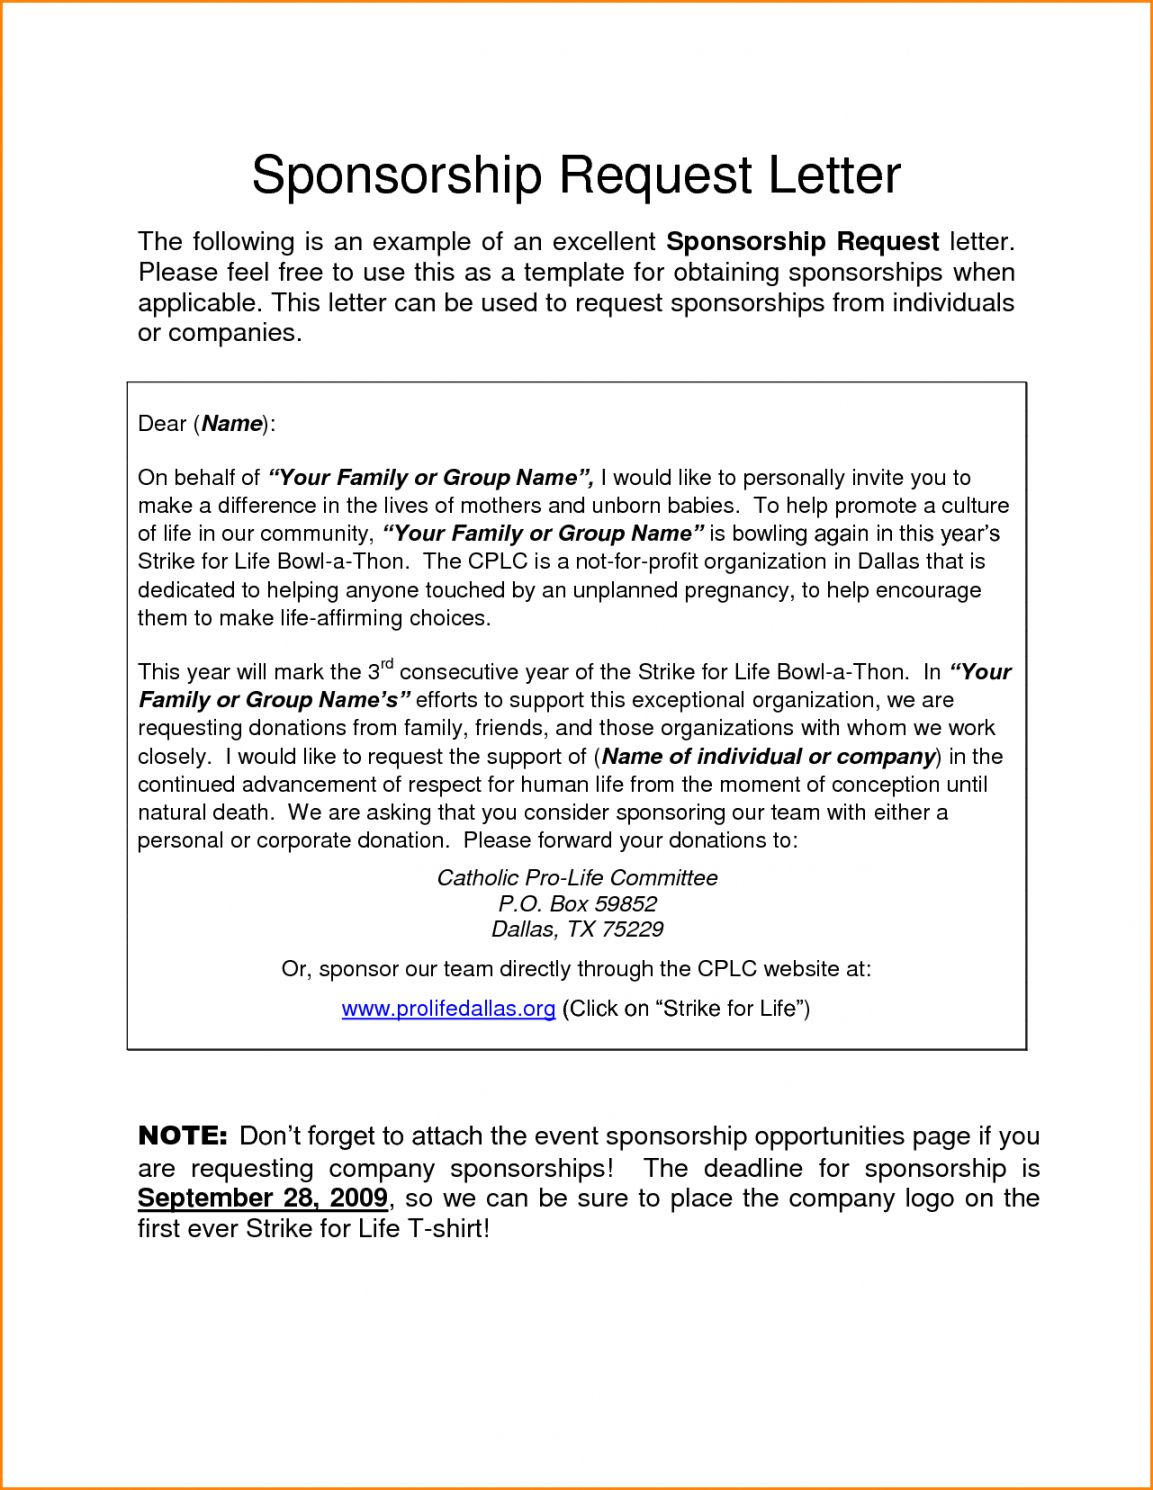 Sponsorship Letter Sample Mple Request Letters Requesting Scholarship Fundraising Letter W Sponsorship Letter Donation Request Letters Donation Letter Template